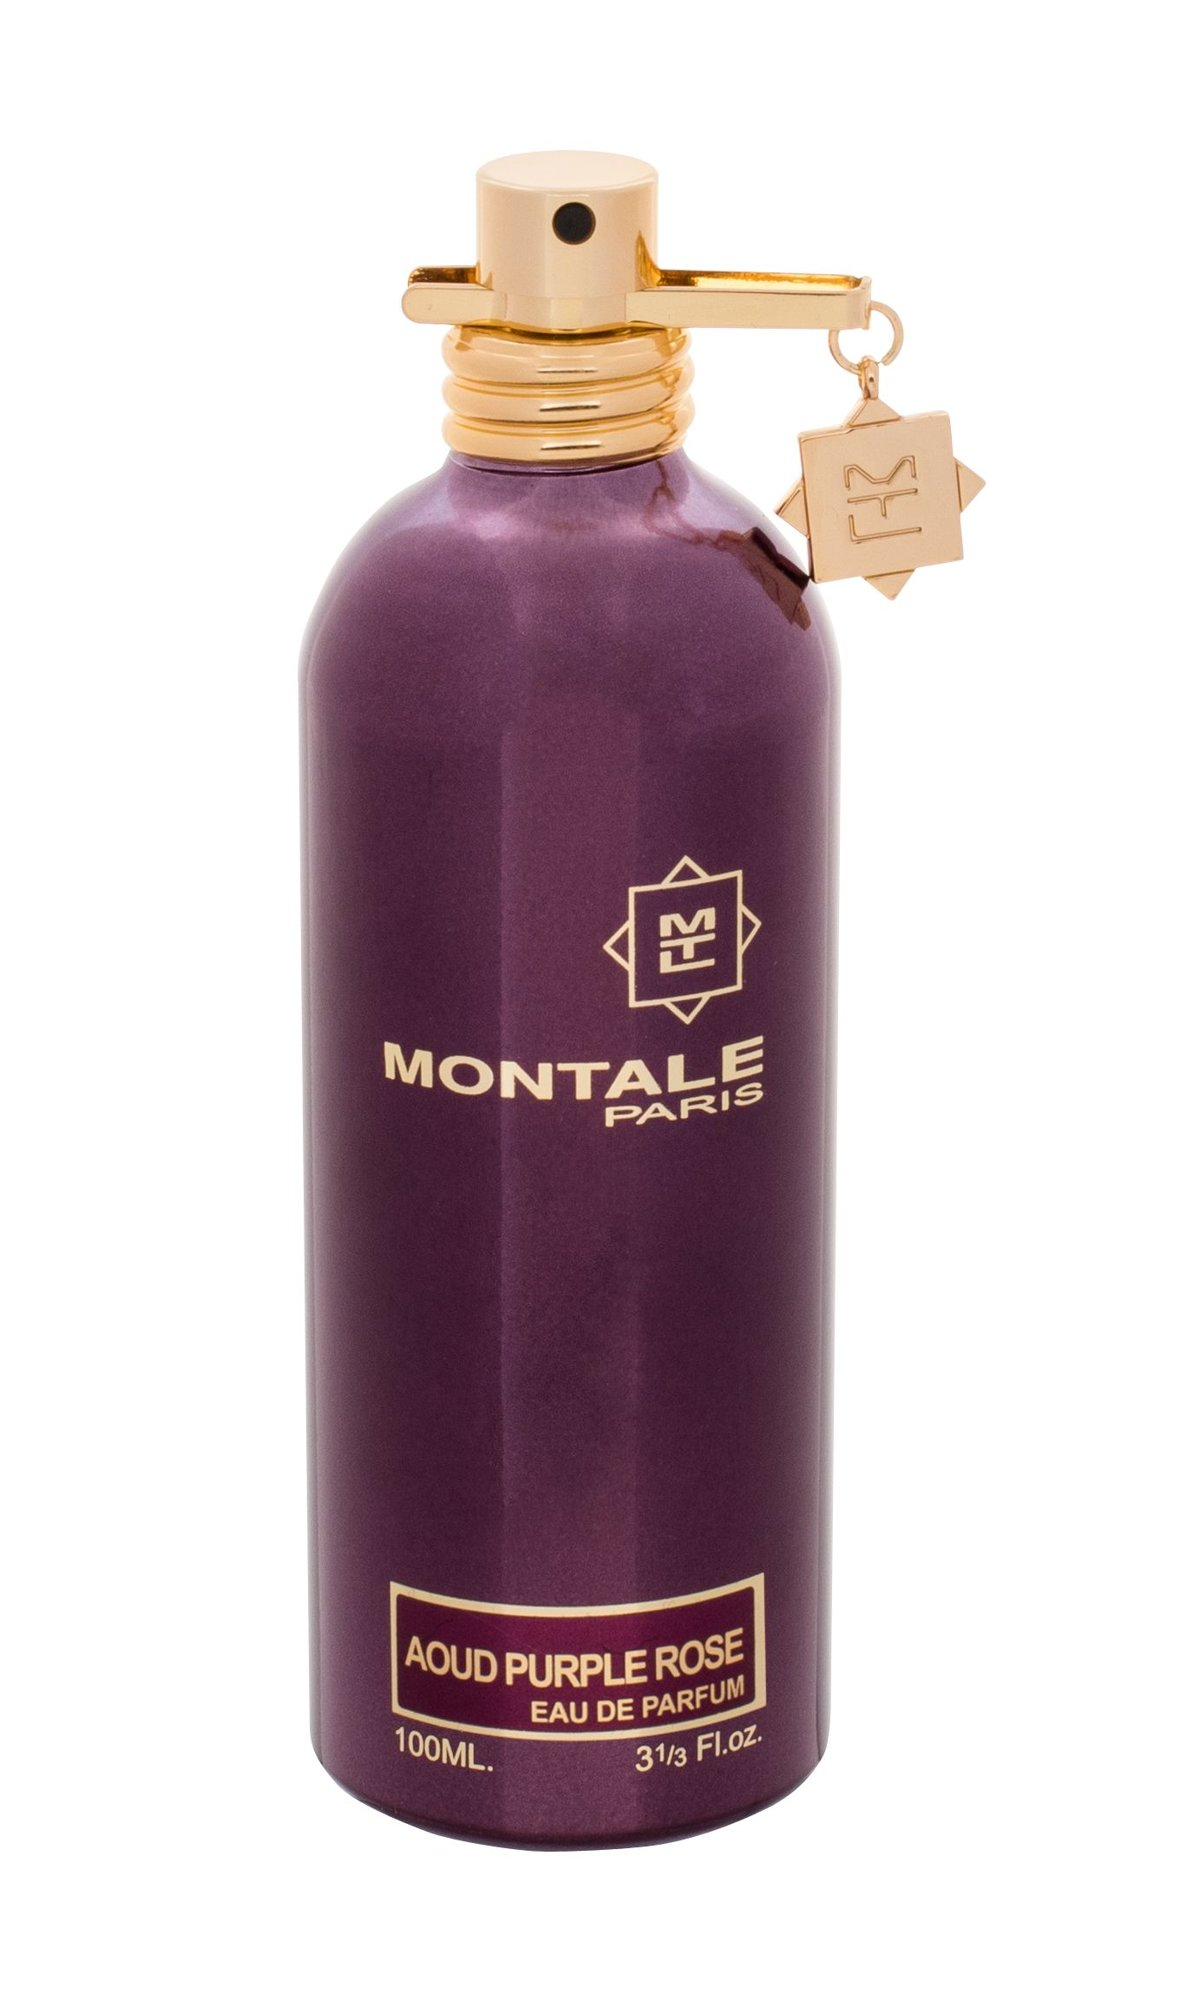 Montale Paris Aoud Purple Rose EDP 100ml